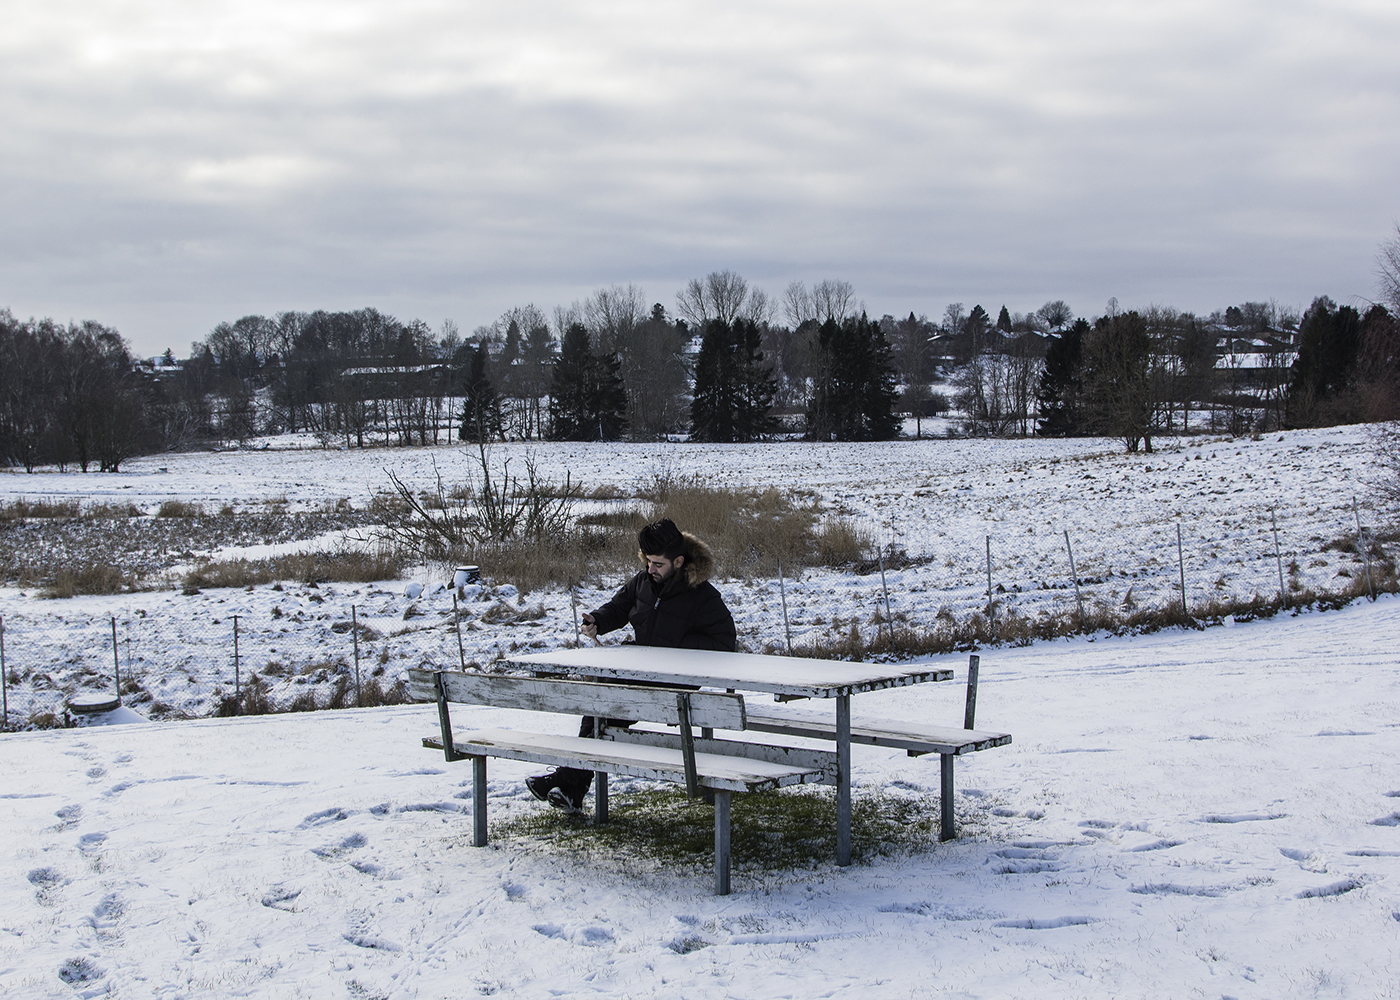 15/01/2016 -- Sandholm, Denmark -- Qanie sit alone in the snowing weather in the Sandholm refugee camp in Denmark.